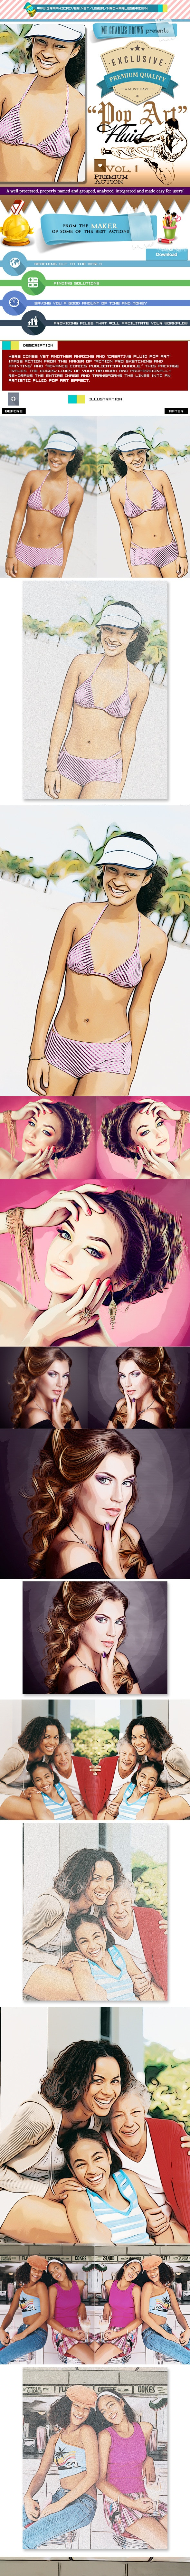 Creative Fluid Pop Art – Charles Brown's Kit - Photo Effects Actions